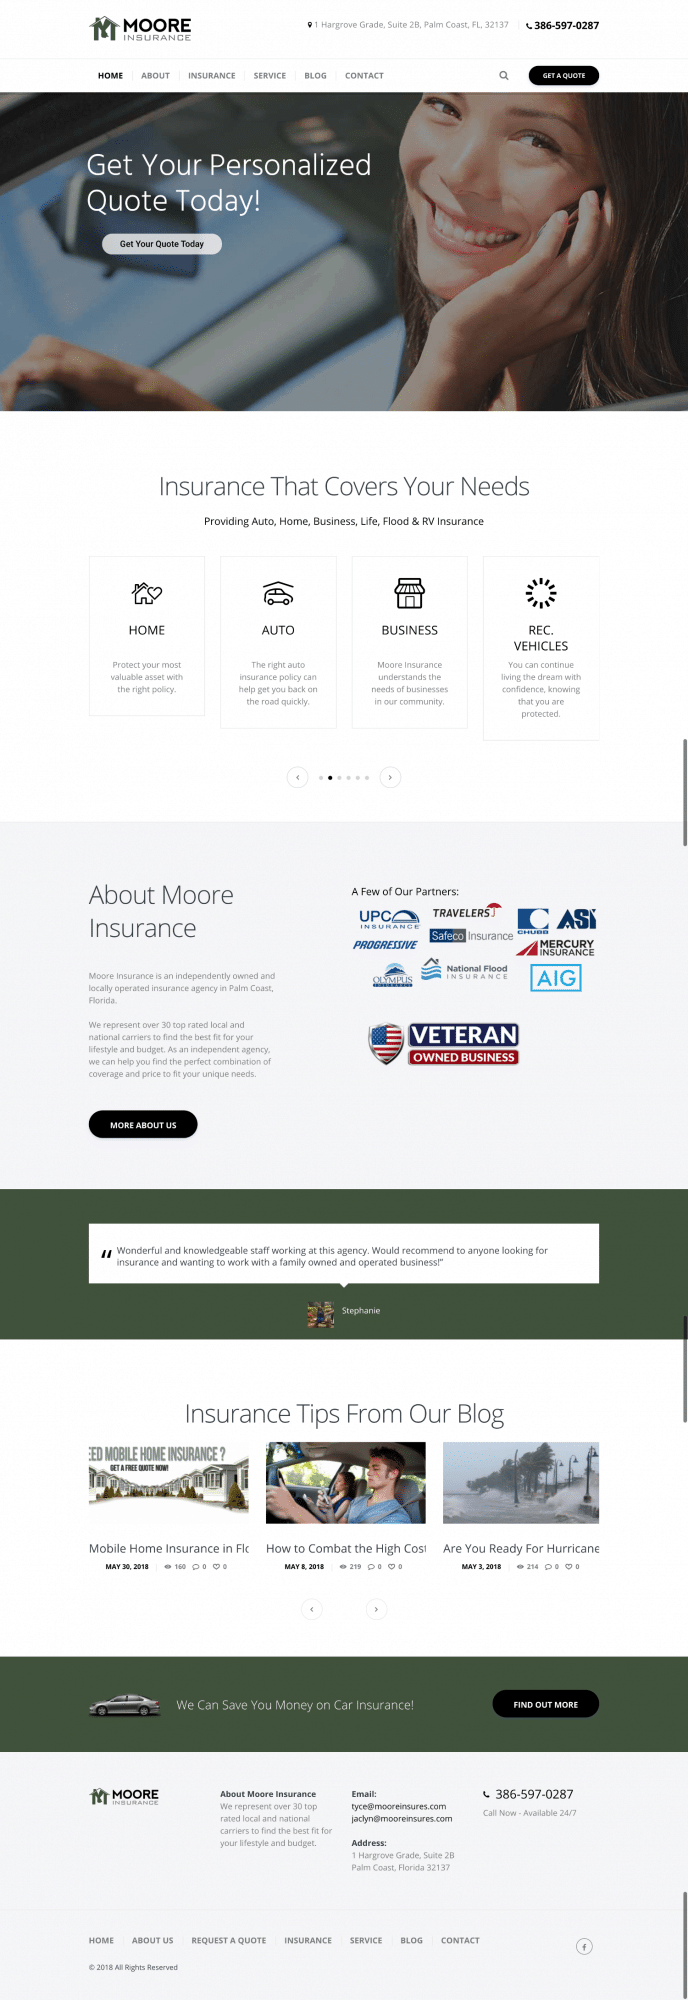 old website for moore insurance